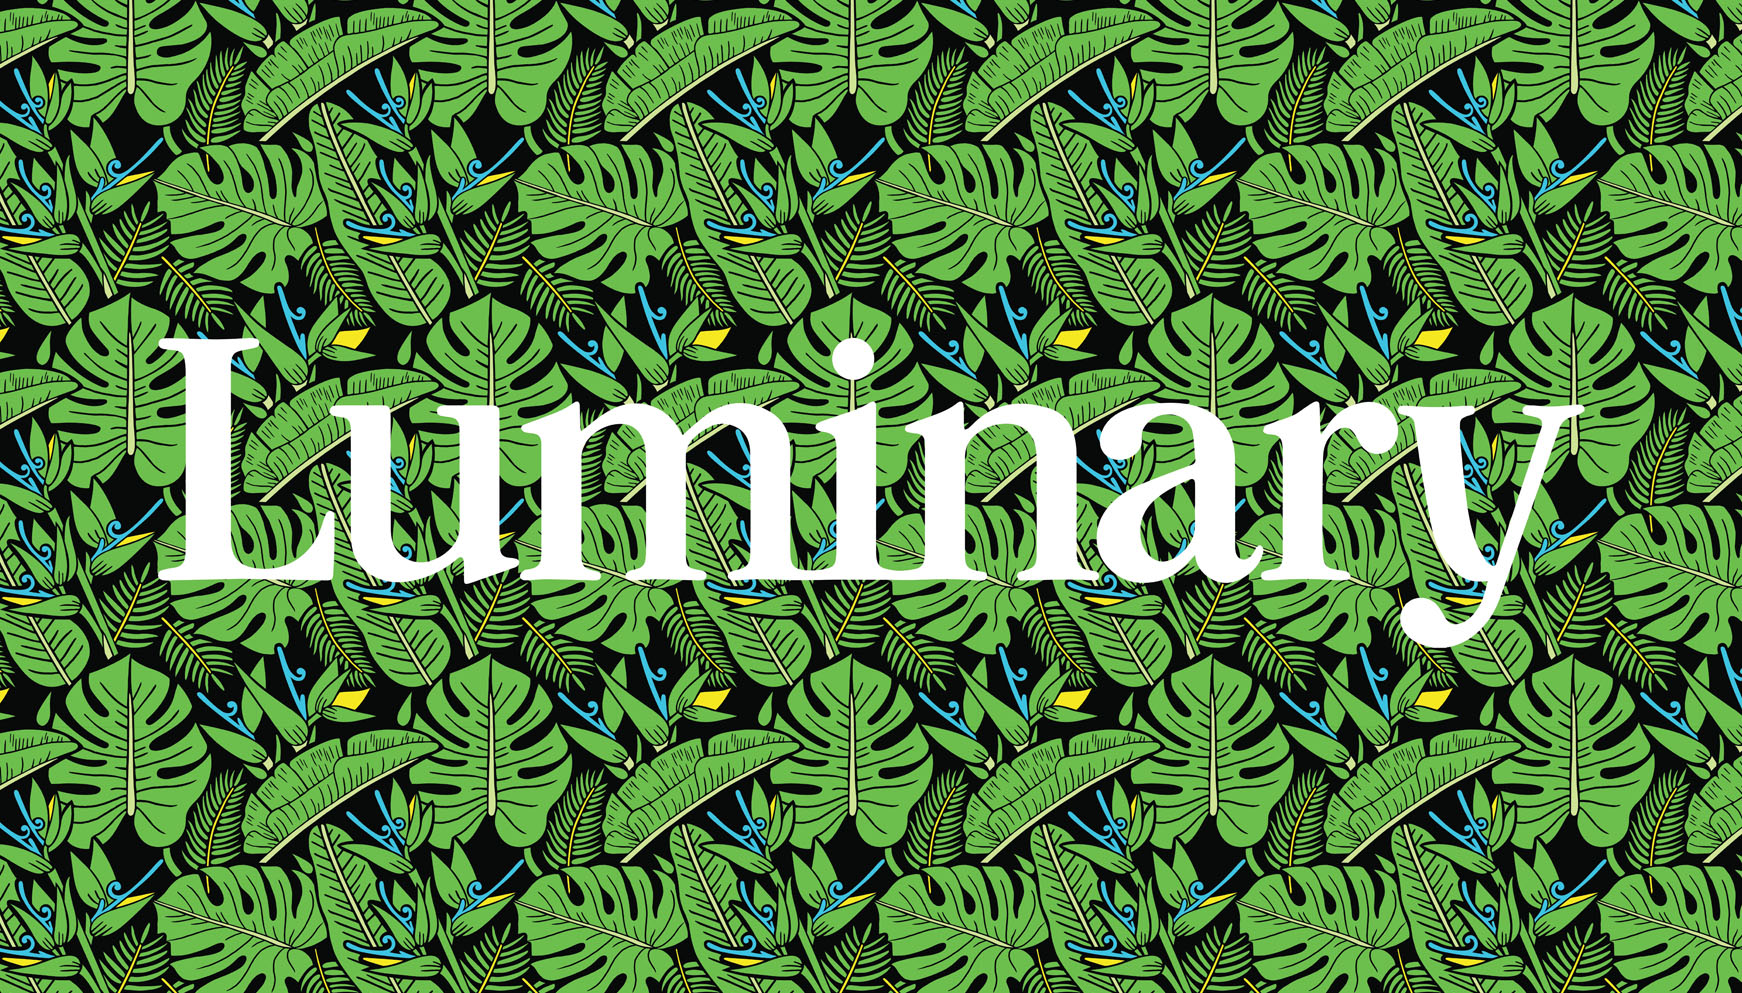 One of three custom patterns (with corresponding icons) created for the podcast app  Luminary    | AD: Benjamin Running